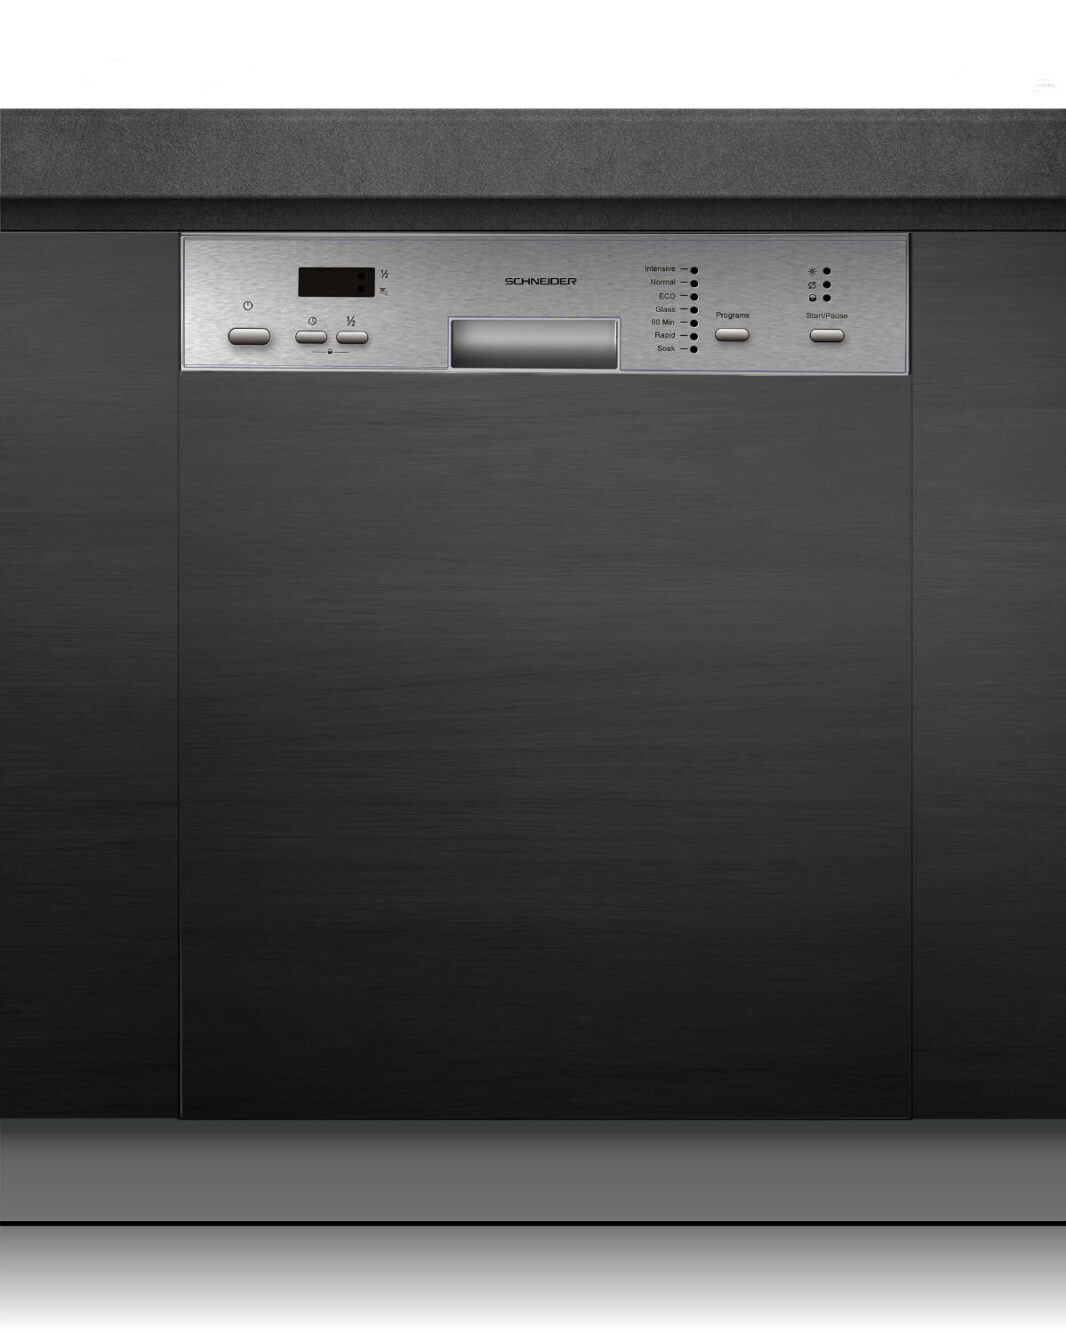 Built-in dishwasher 60 cm stainless steel - Schneider